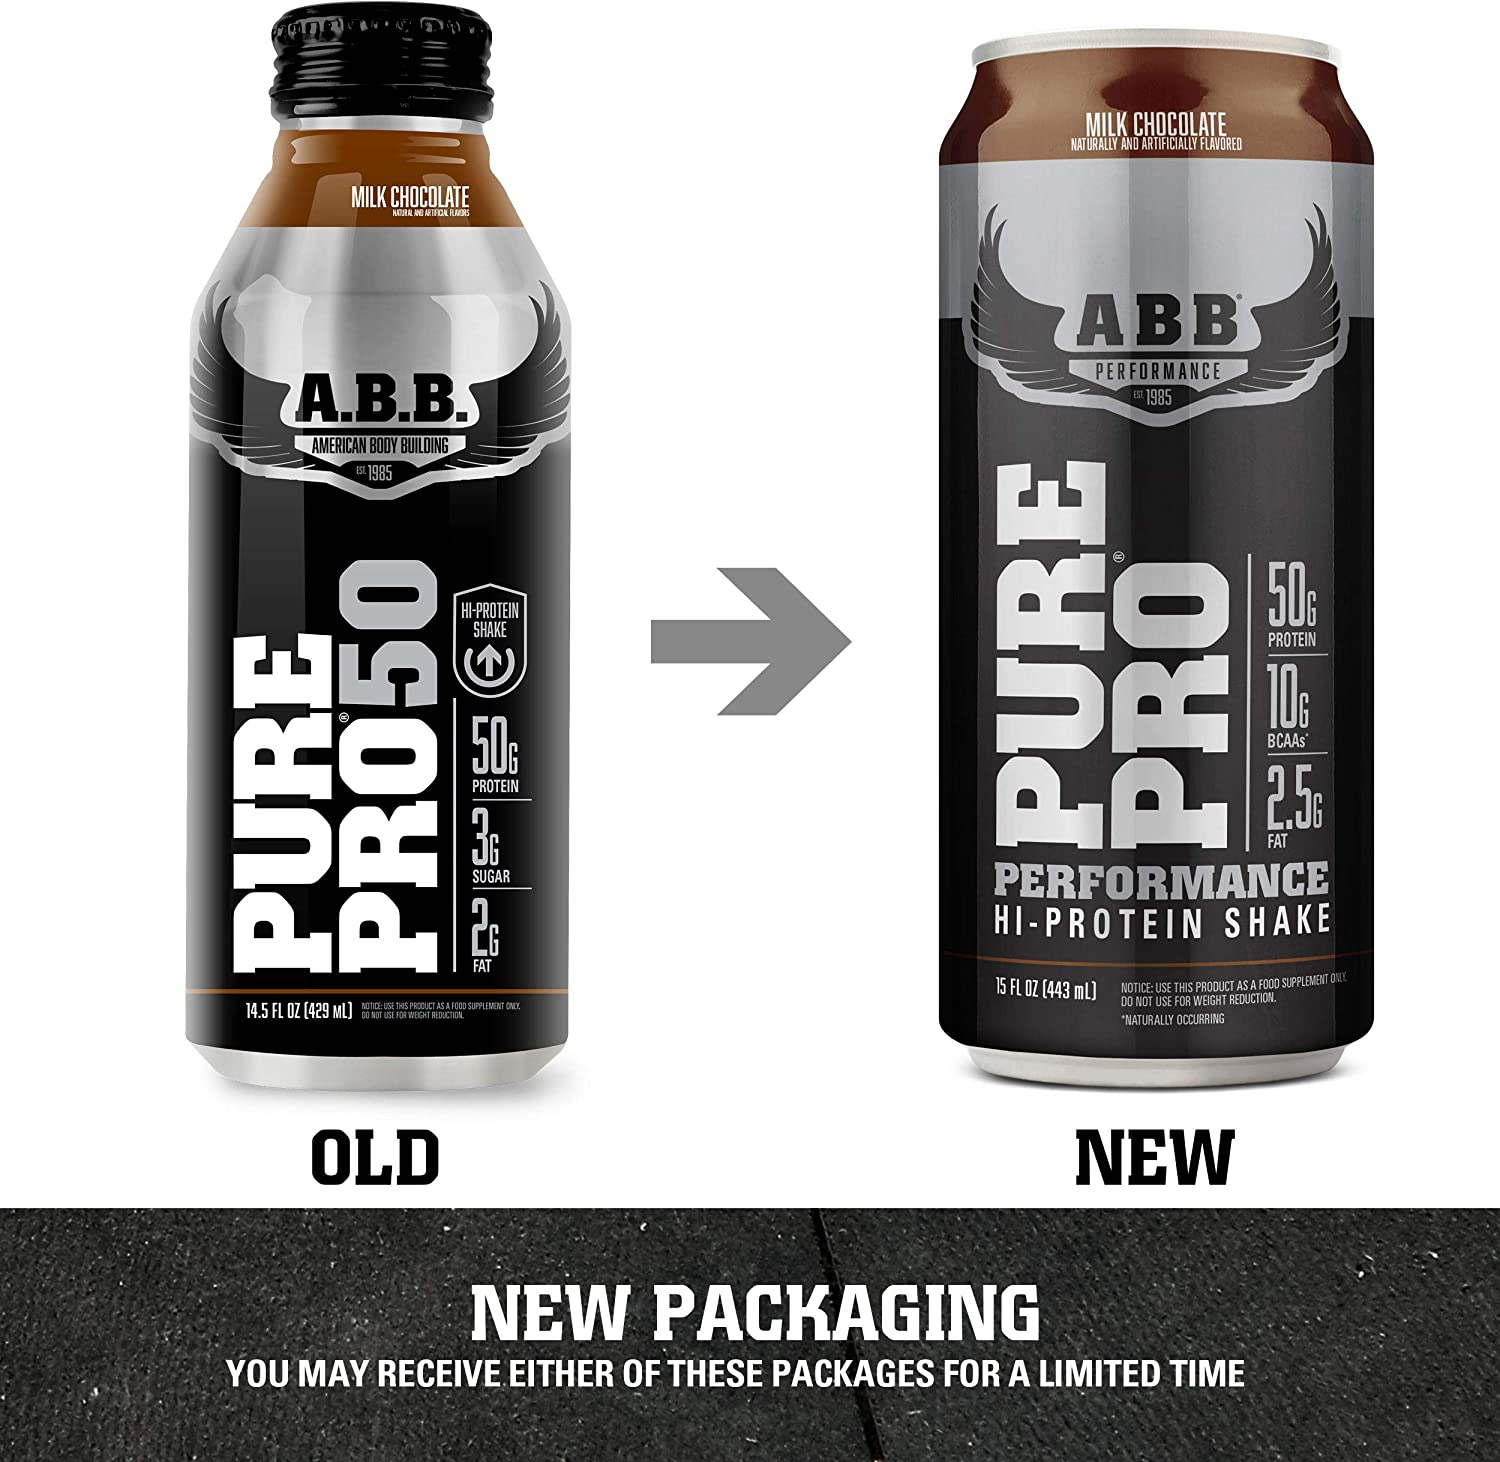 Amazon Com American Body Building Abb Pure Pro 50 Post Workout Recovery Protein Shake Muscle Builder Hi Protein Low Fat Low Sugar Milk Chocolate Flavored Ready To Drink 15 Oz Bottles 12 Count Health